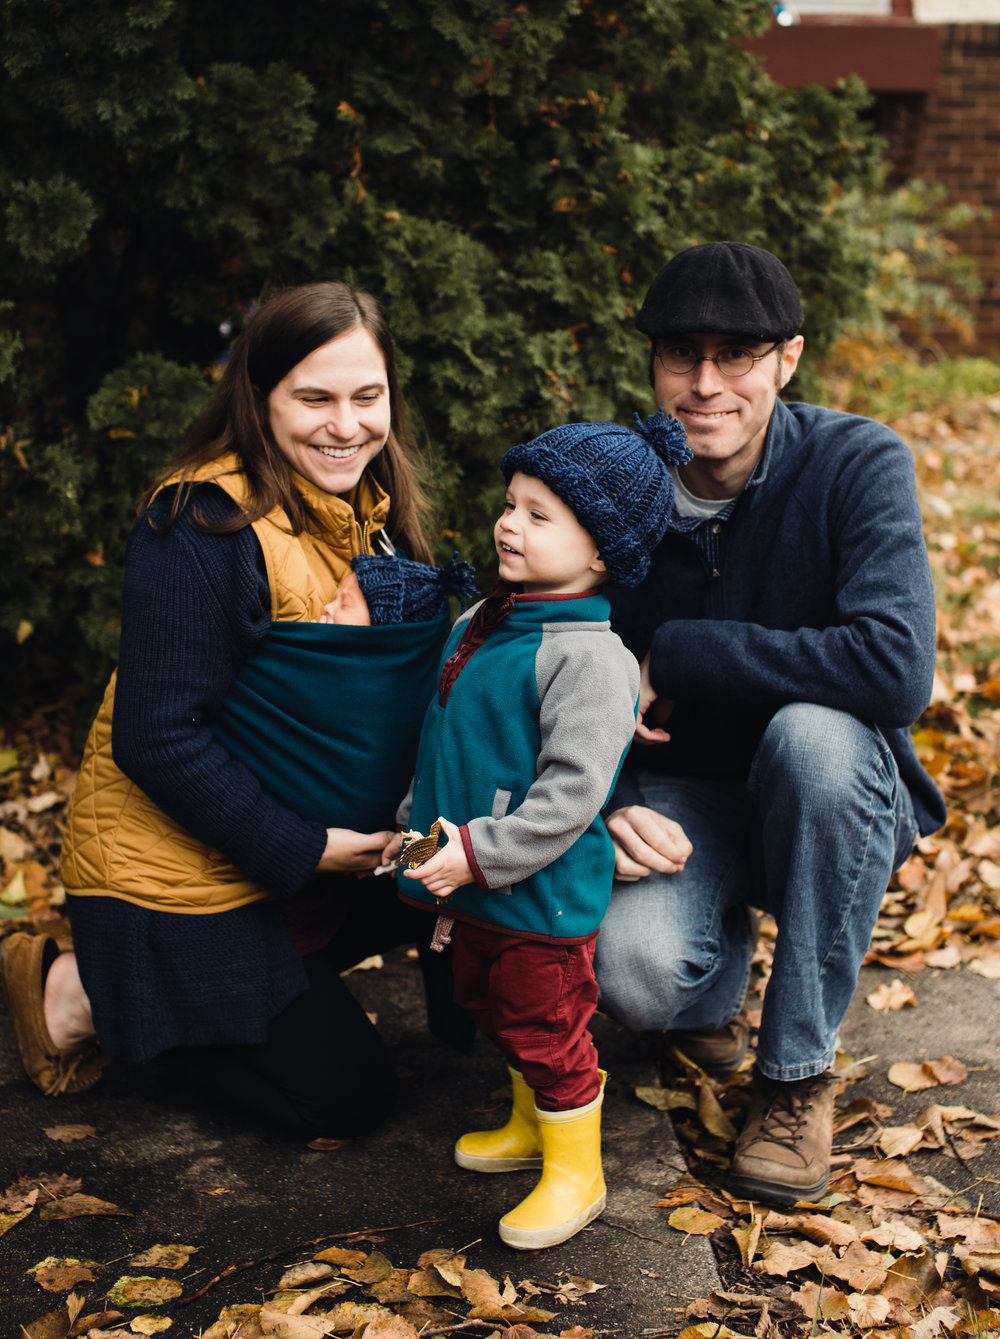 An excellent photographer! Highly recommend. She takes great shots and is a delight to work with. We hired Hannah for maternity and newborn photos and she was marvelous at working with our ideas and bringing her own to the table. I appreciate her organic style and honed craft. I was seriously impressed and can't wait for the next occasion we need family photos.  -Emily Erickson